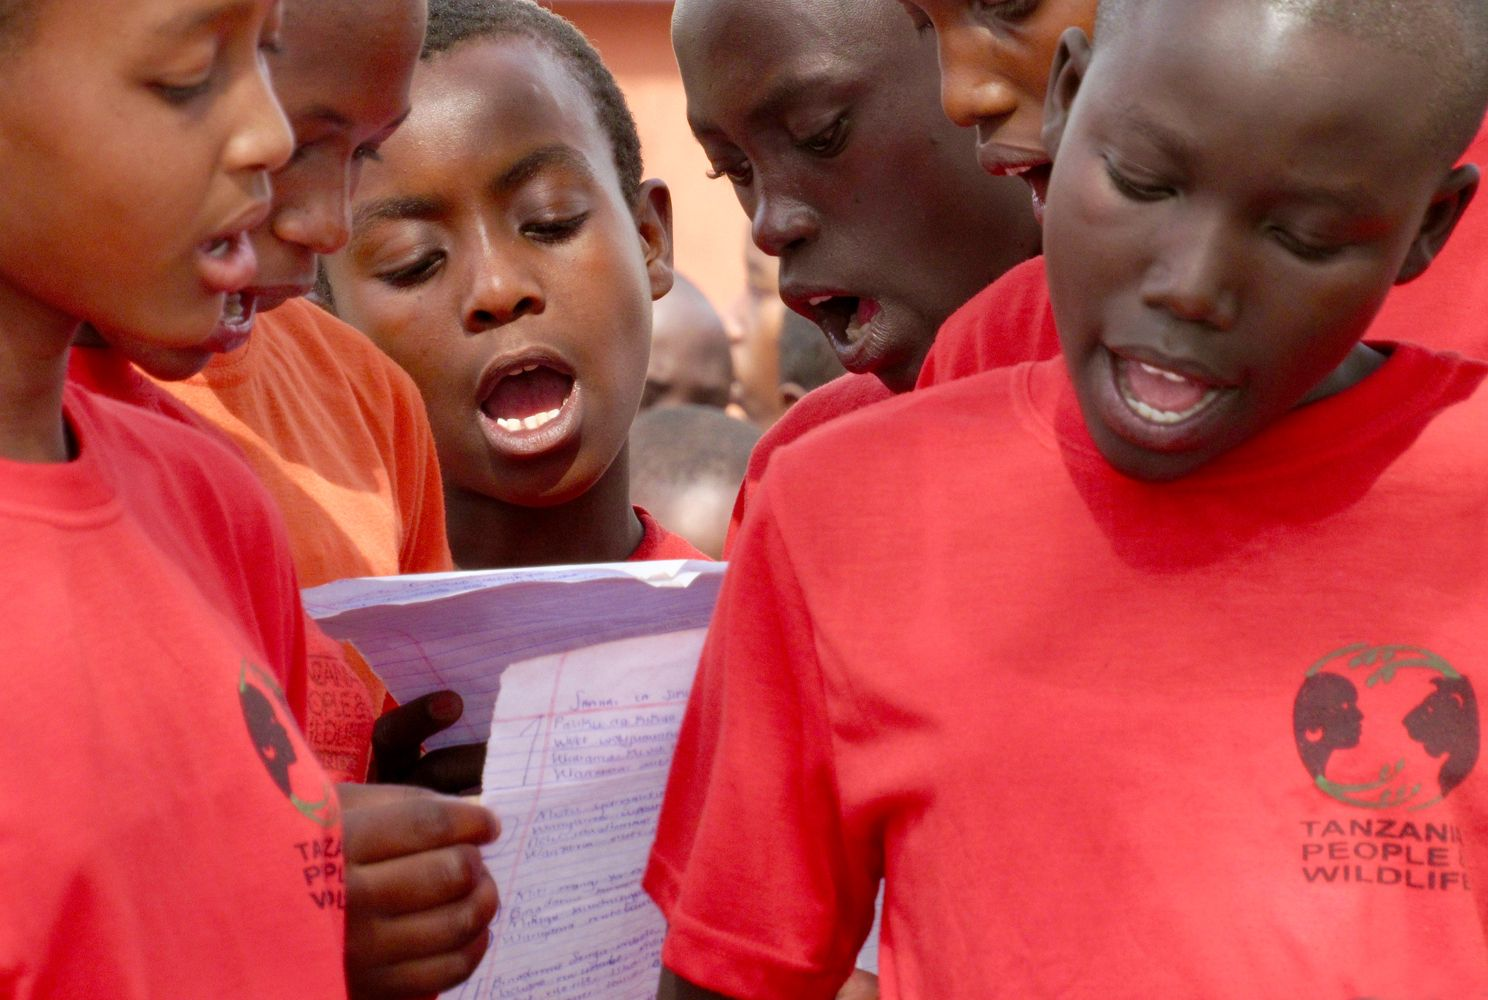 Tanzanian youth singing